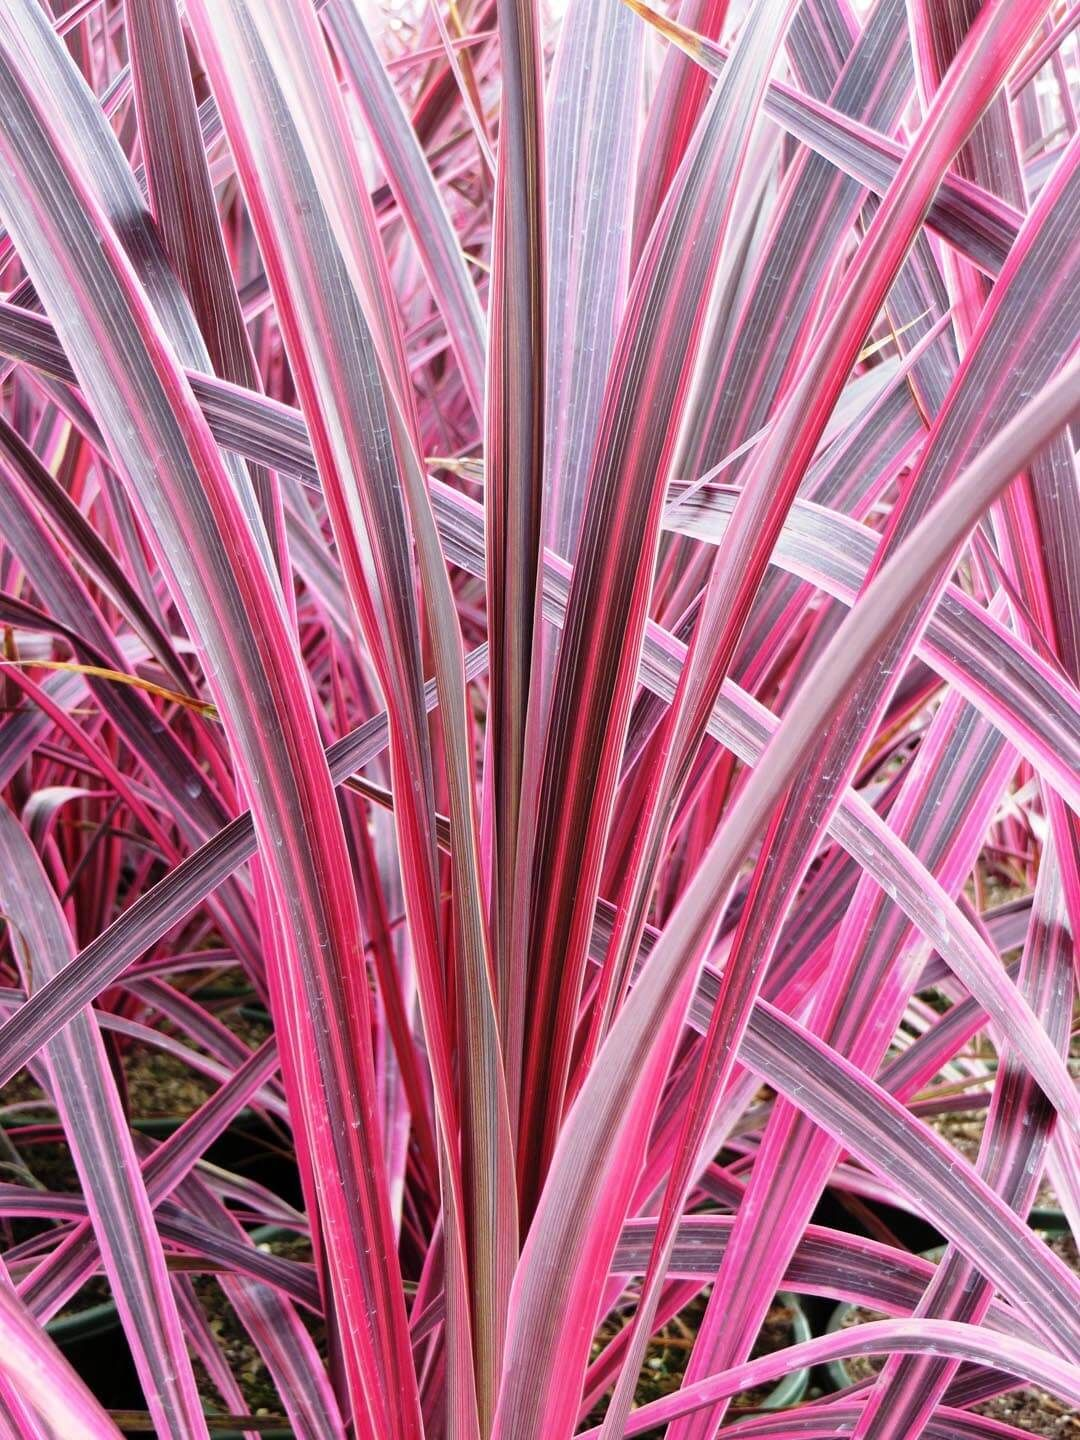 Cordyline Electric Pink Boething Treeland Farms Architectural Plants Pink Grass Planting Flowers